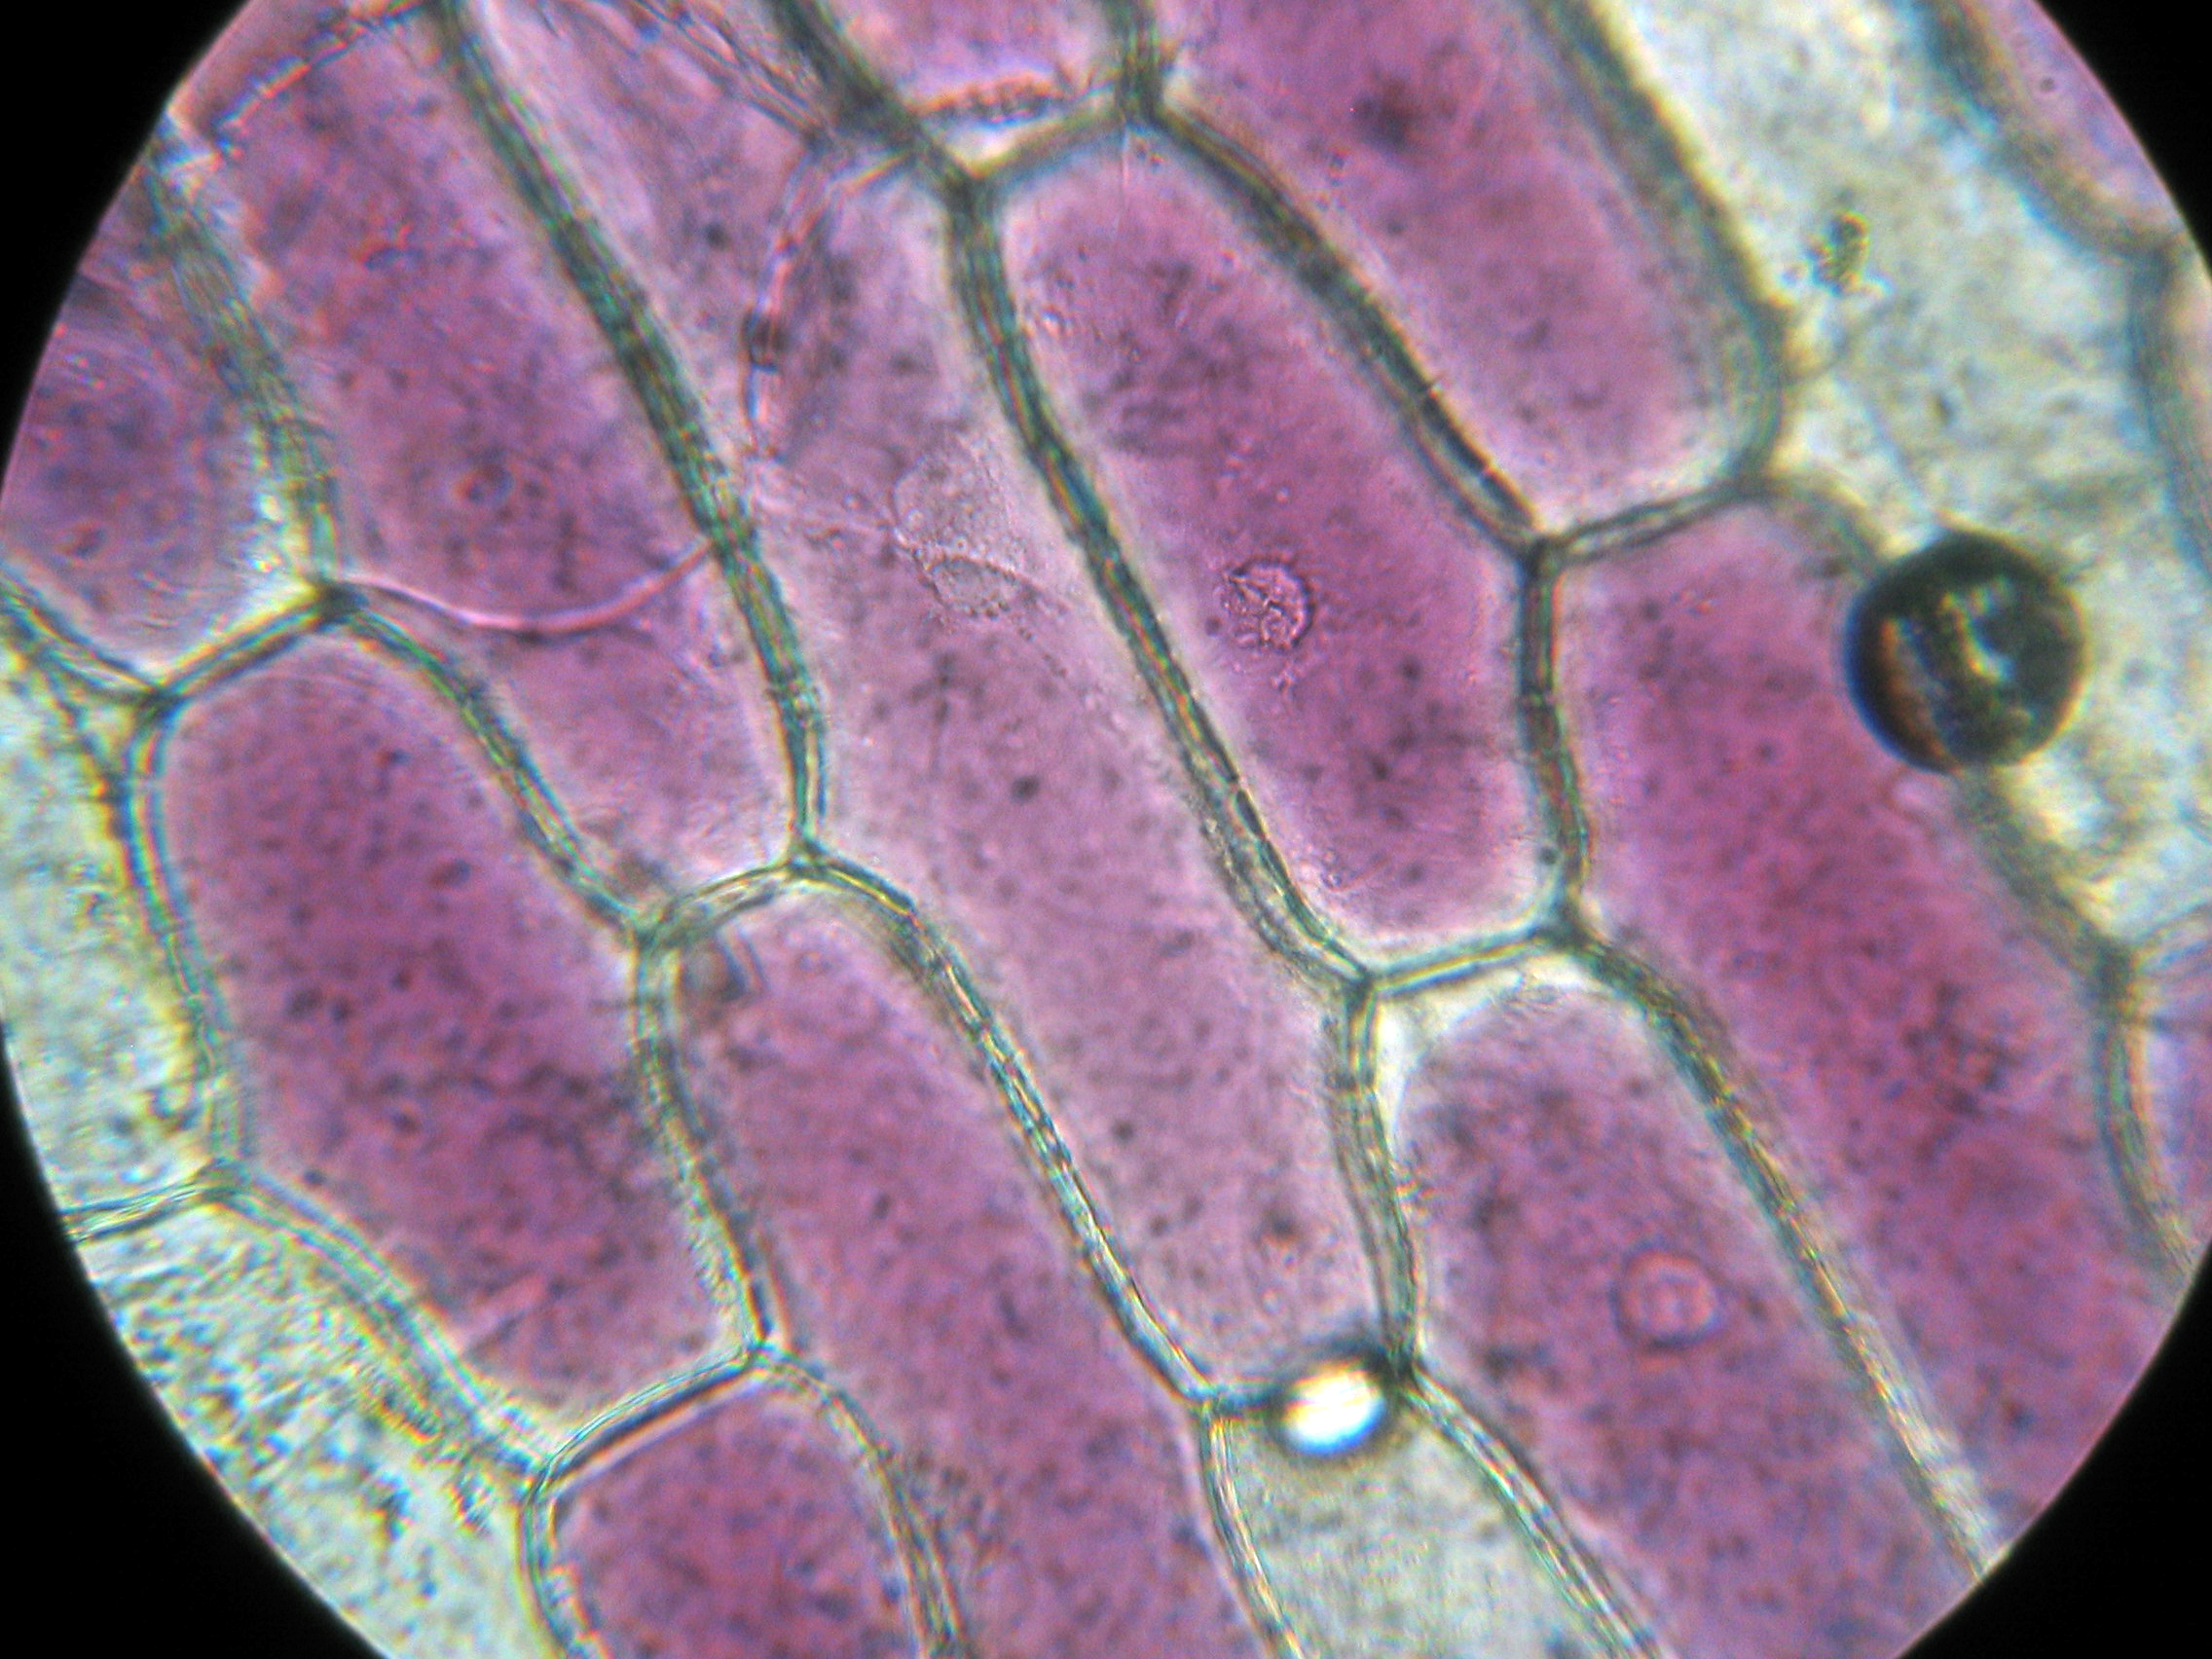 File:Red Onion Cells.JPG - Wikipedia